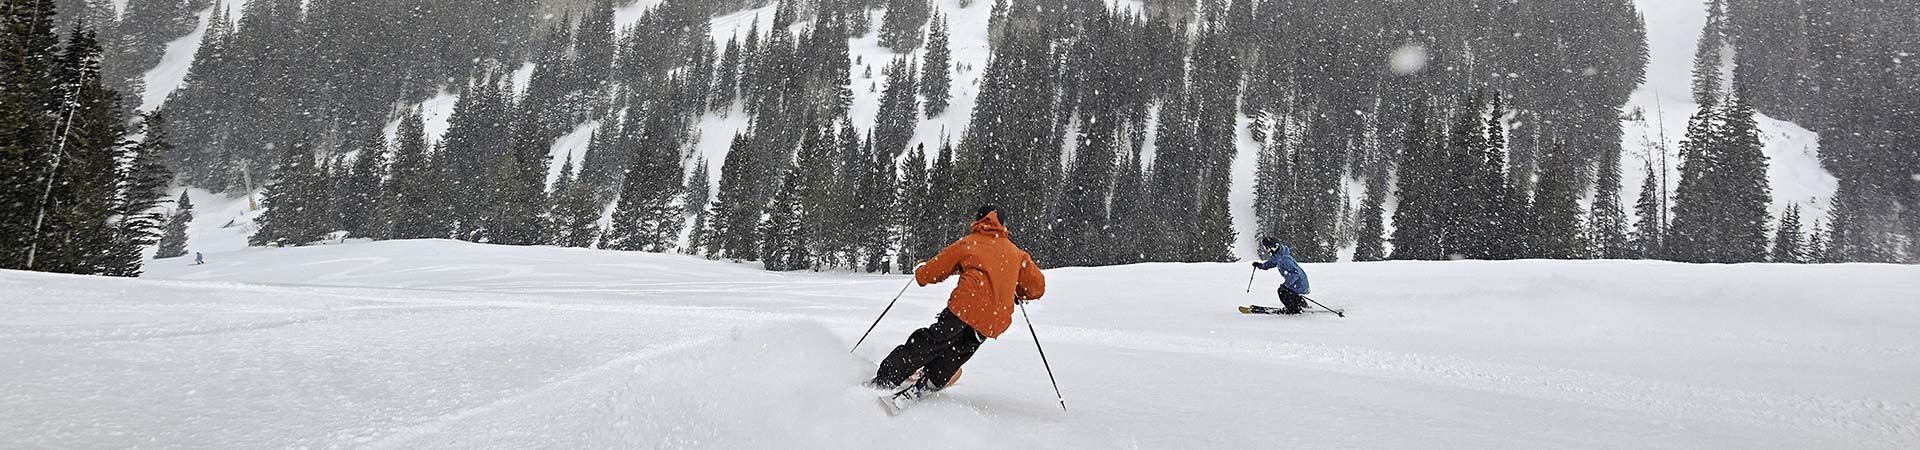 Two skiers at Breckenridge on powder day 1920x450